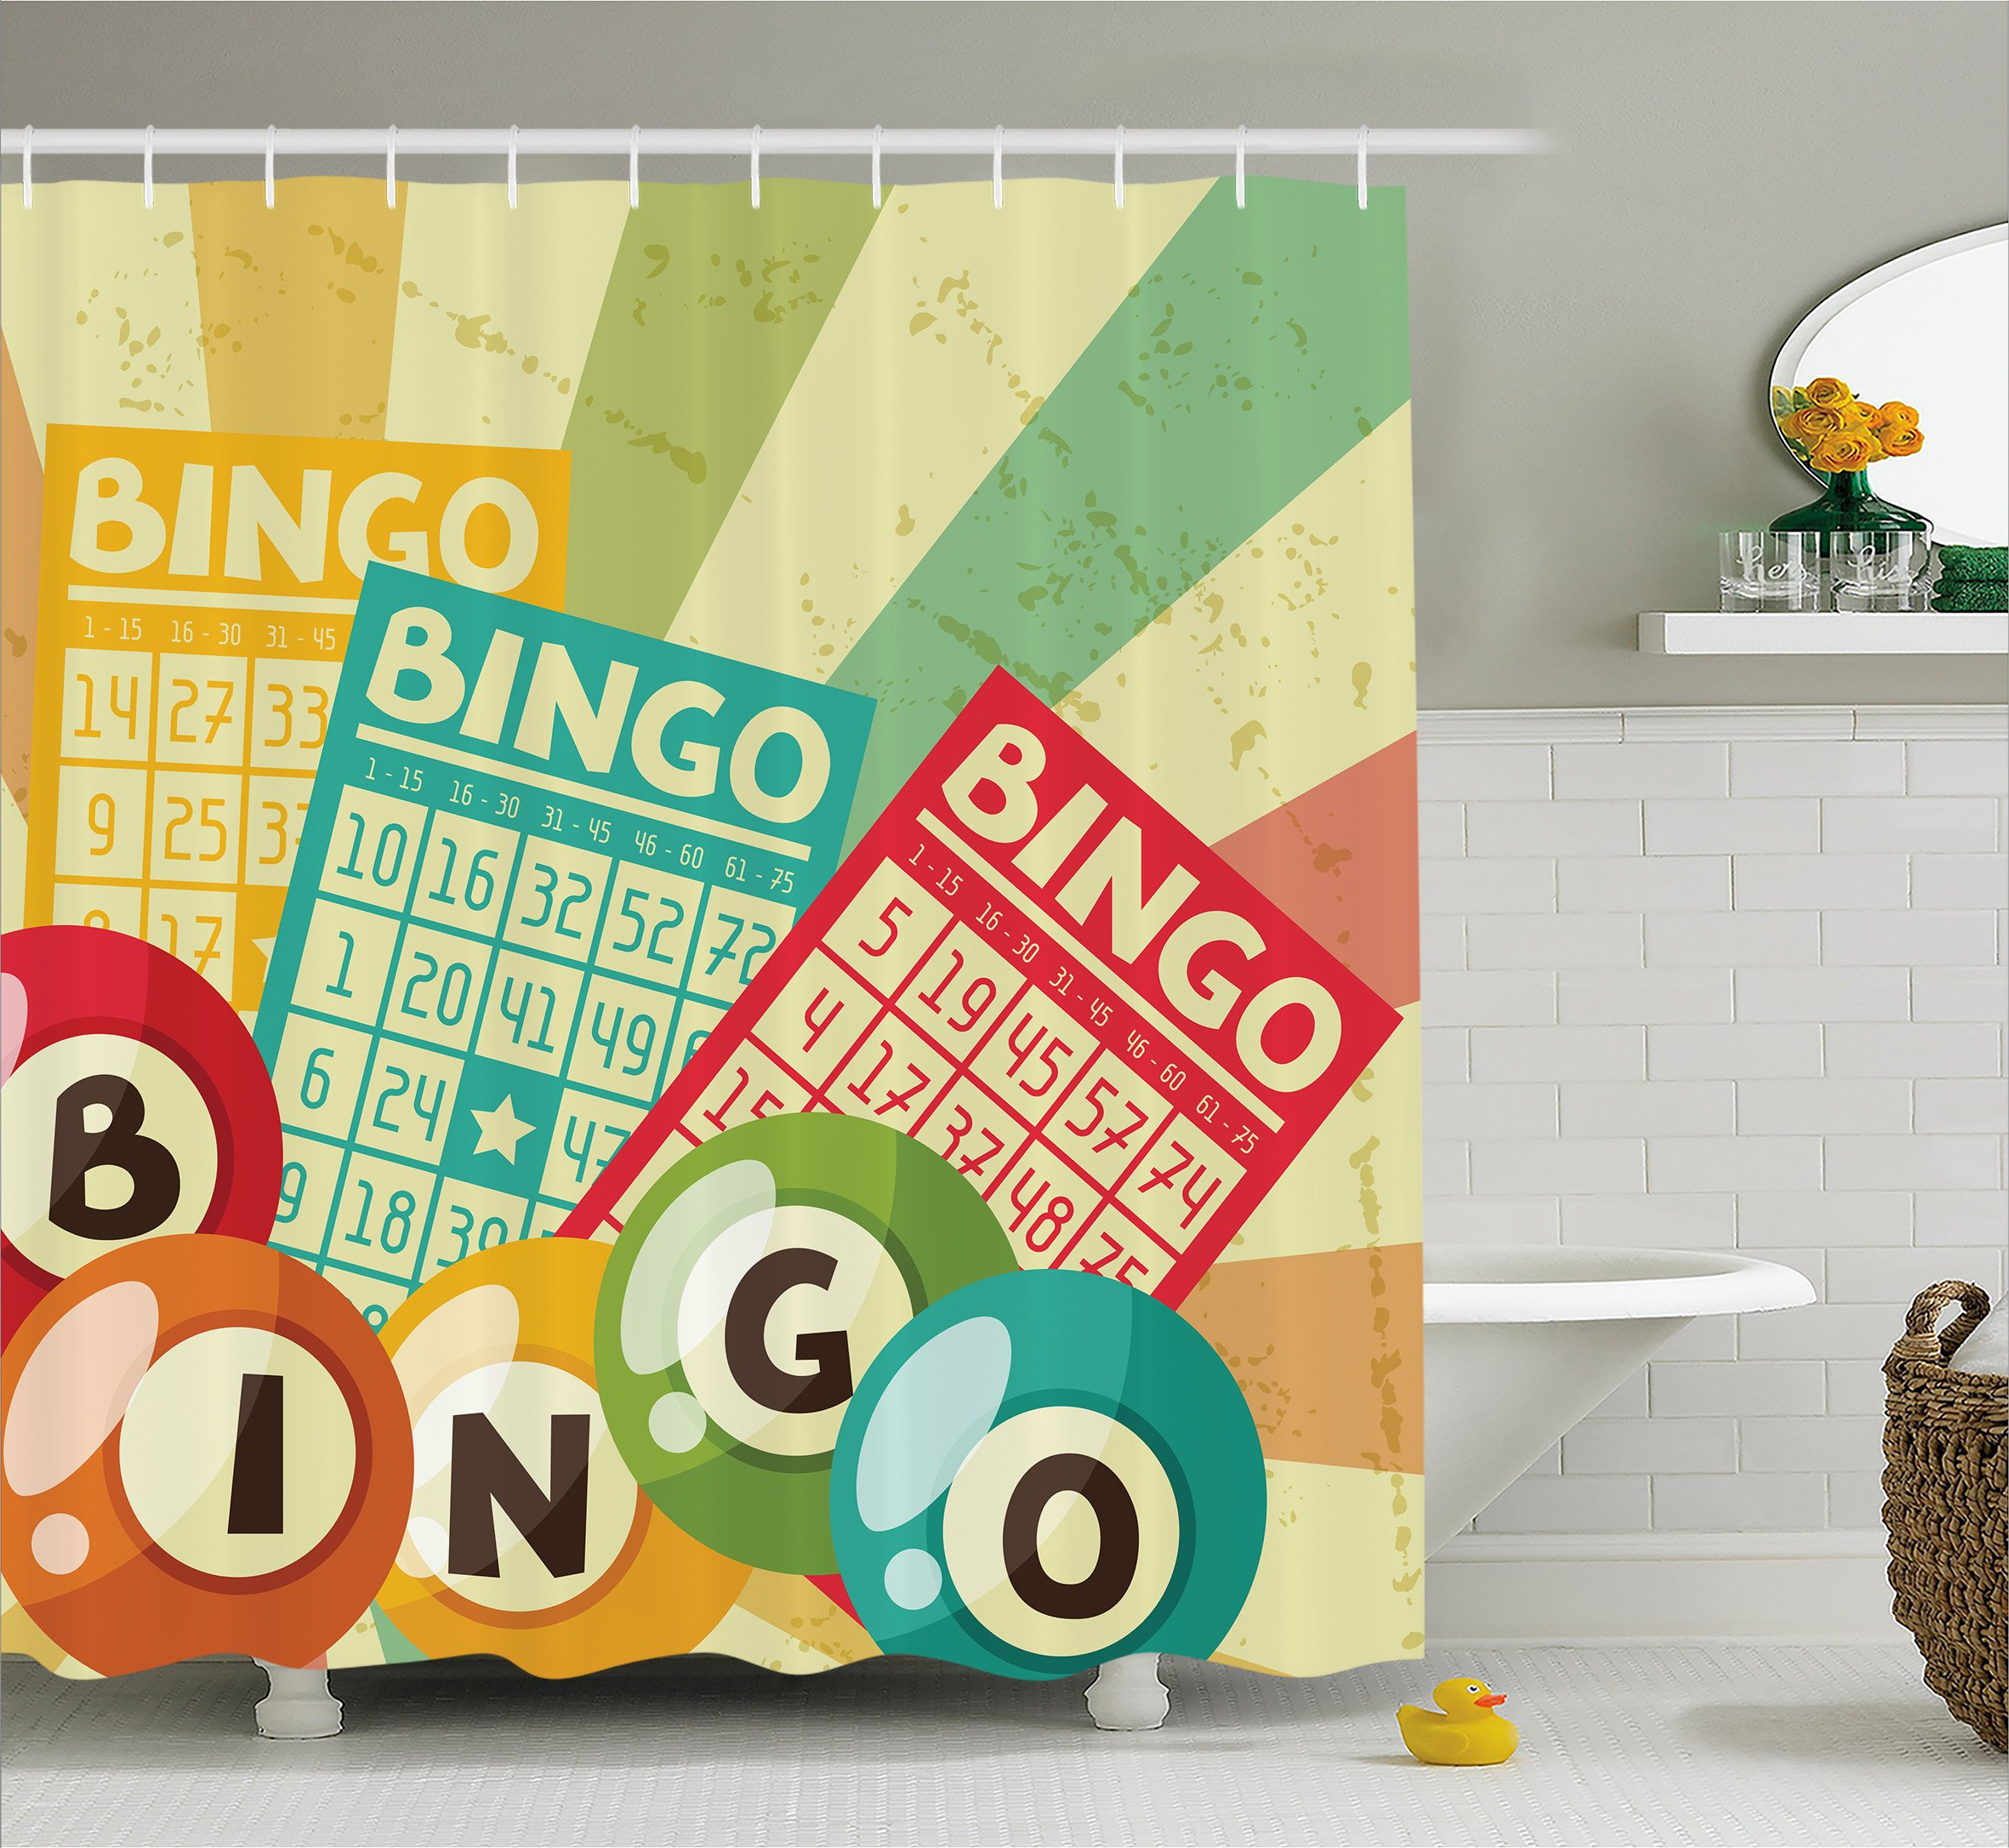 Ambesonne Vintage Decor Shower Curtain, Bingo Game with Ball and Cards Pop Art Stylized Lottery Hobby Celebration Theme, Fabric Bathroom Decor Set with Hooks, 84 inches Extra Long, Multi